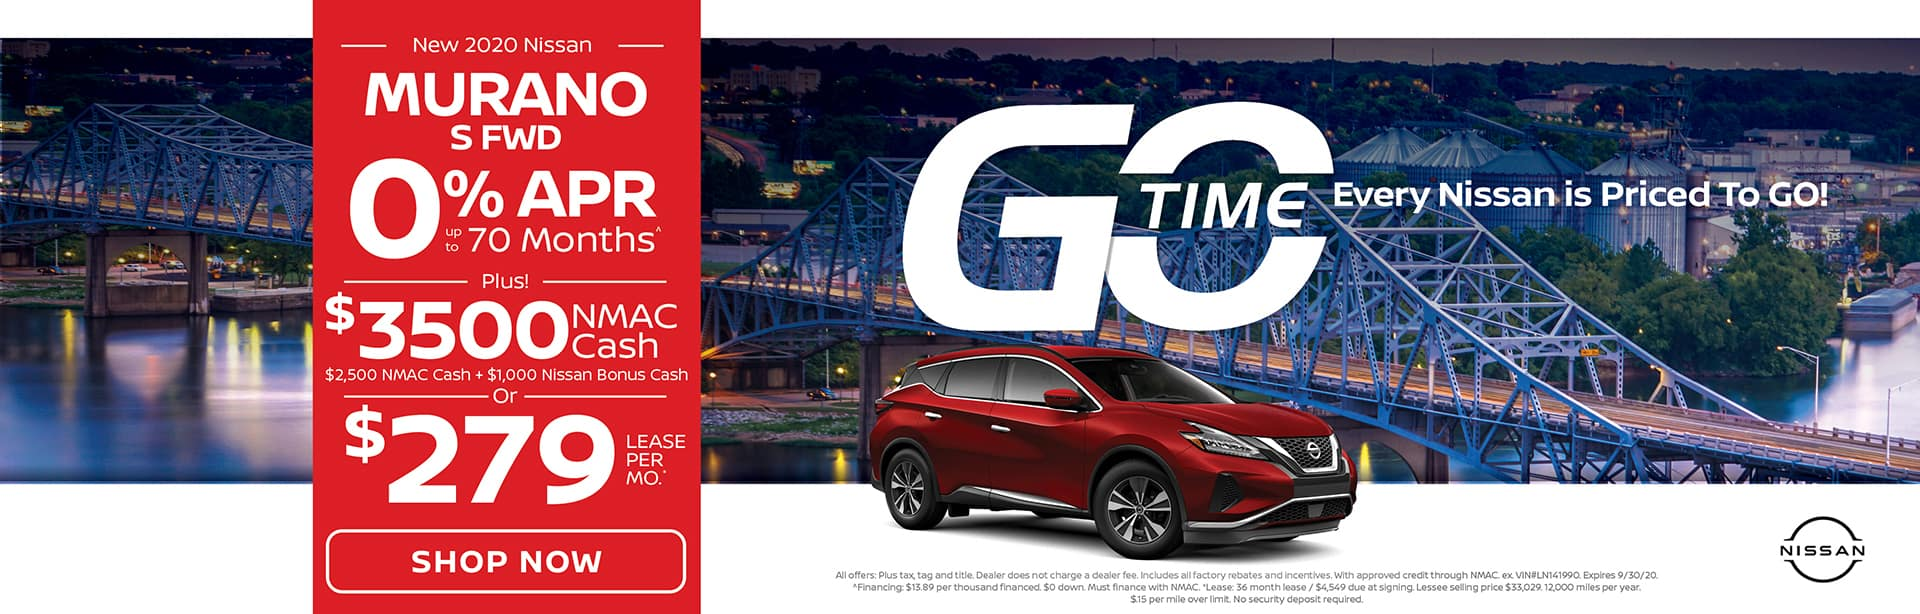 GO TIME - New 2020 Nissan Murano